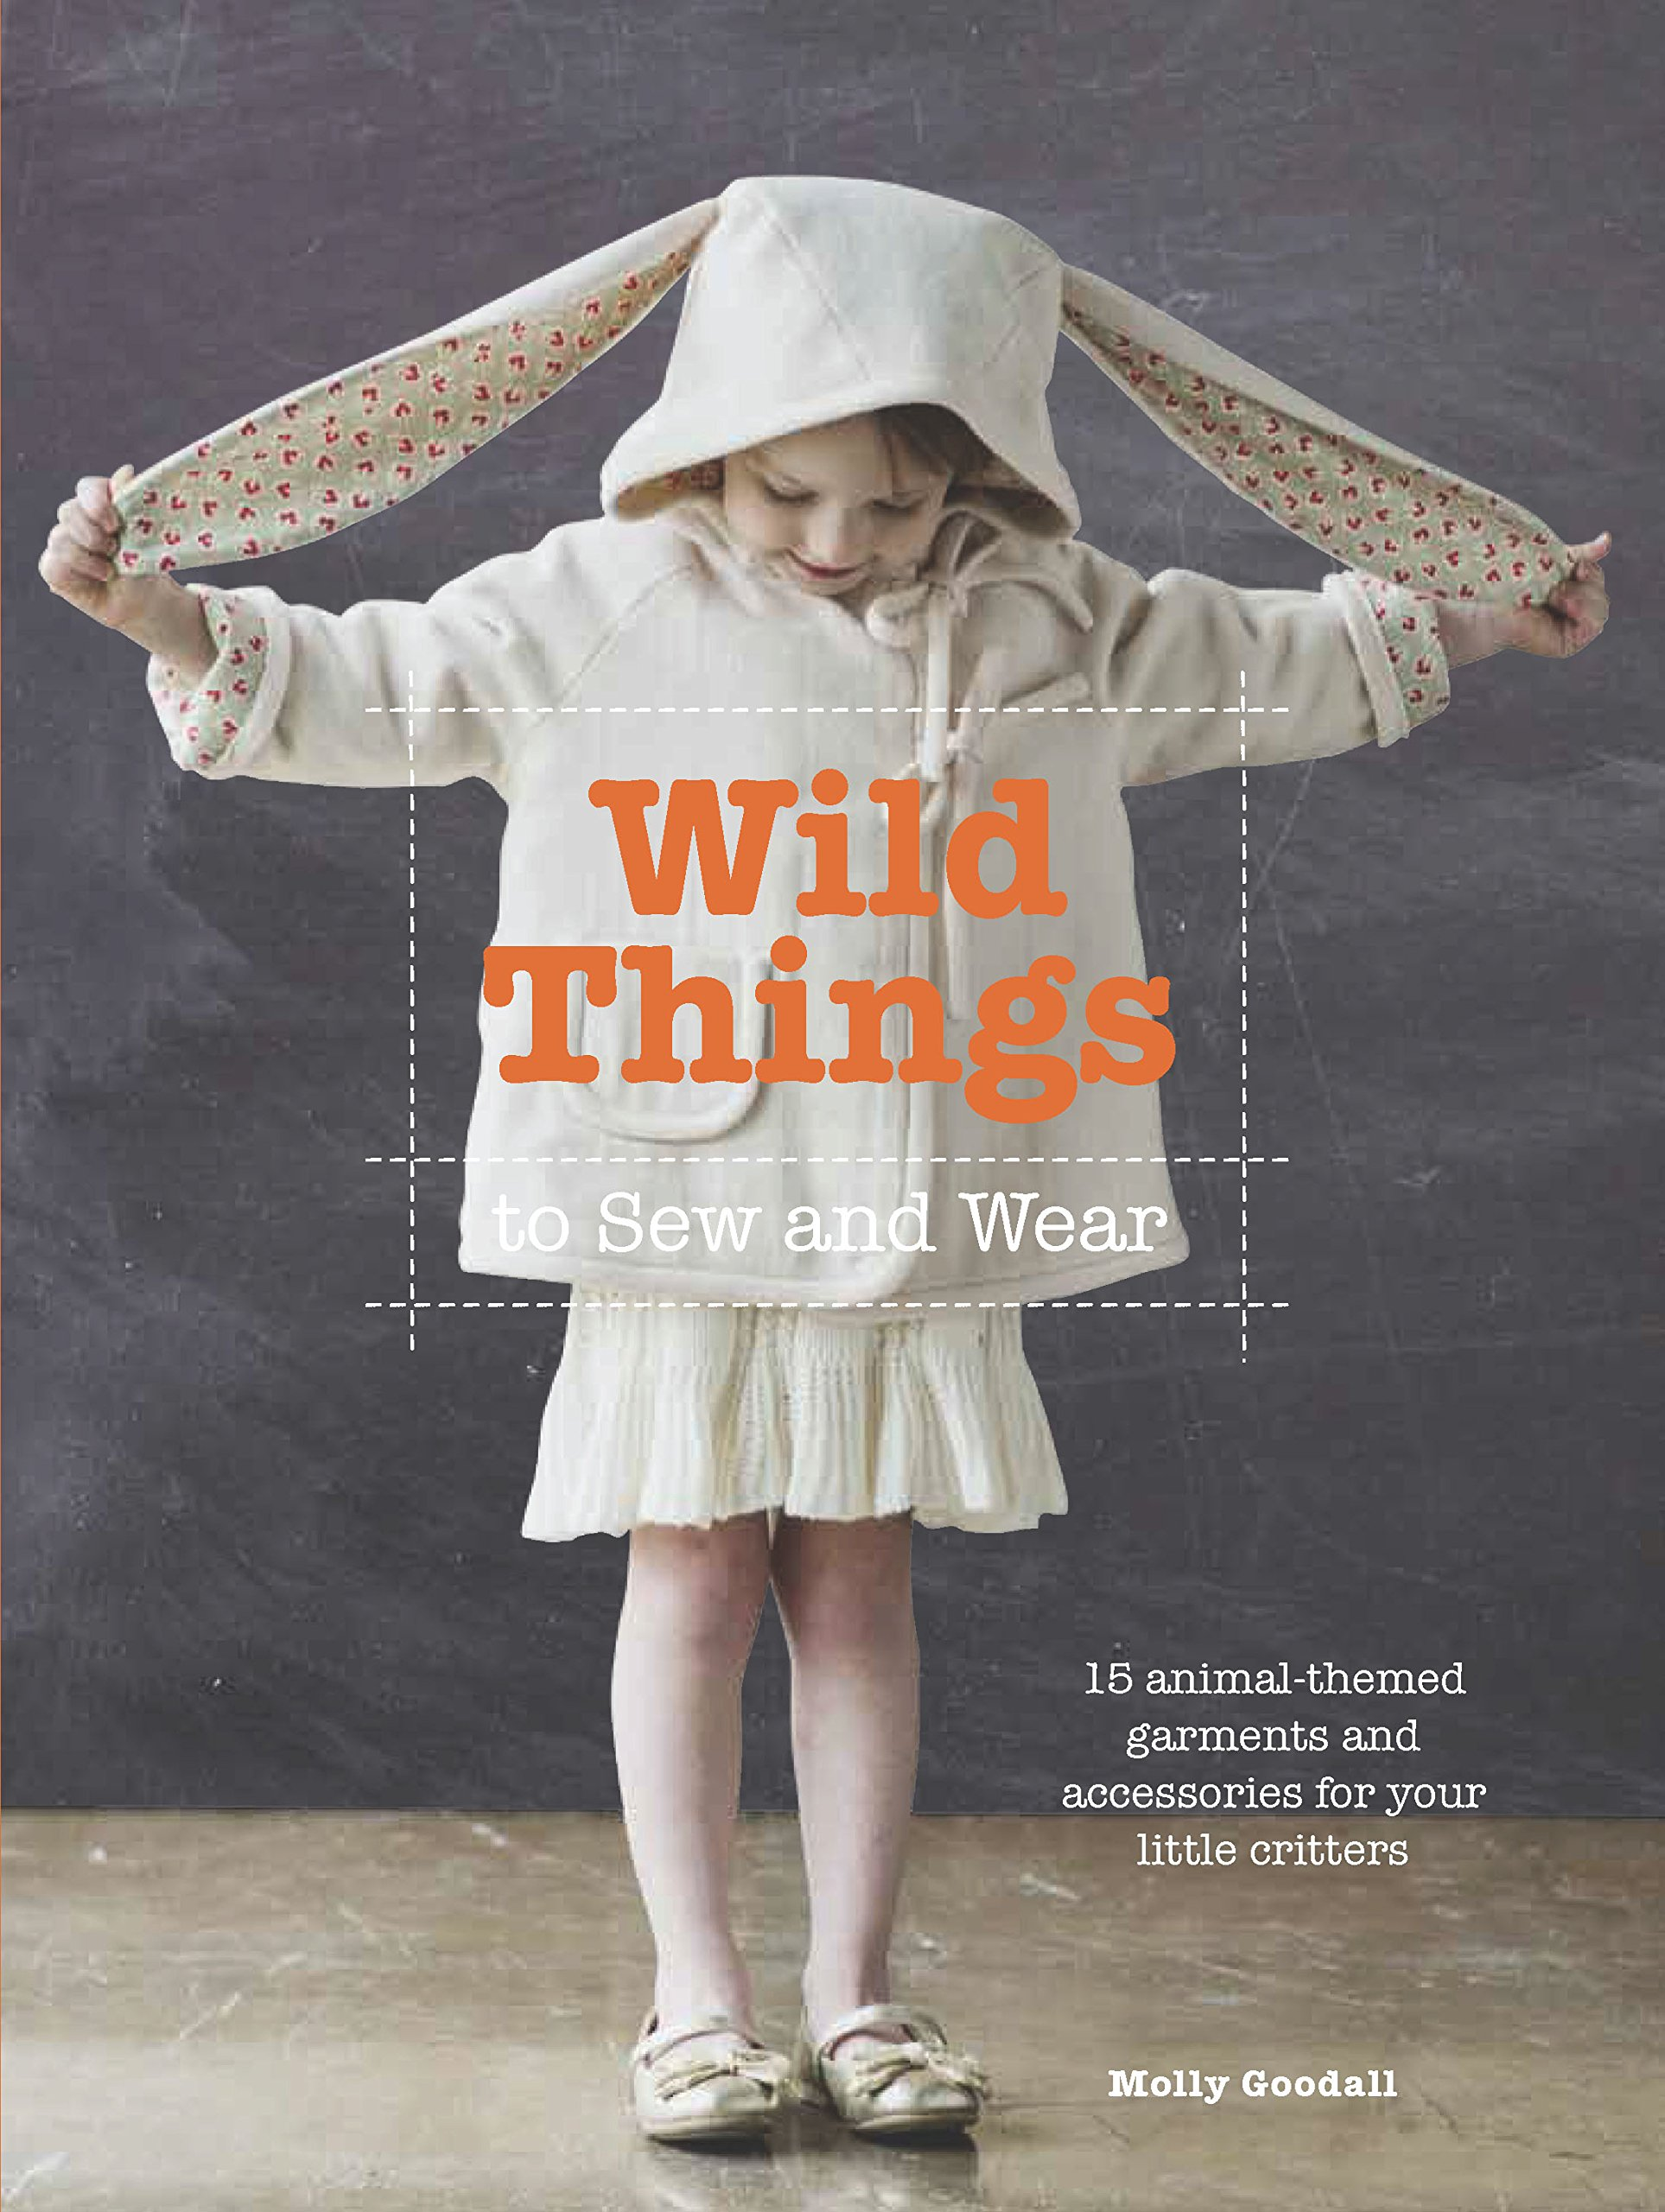 c282072fbb93 Wild Things: Funky Little Clothes To Sew: Amazon.co.uk: Kirsty ...